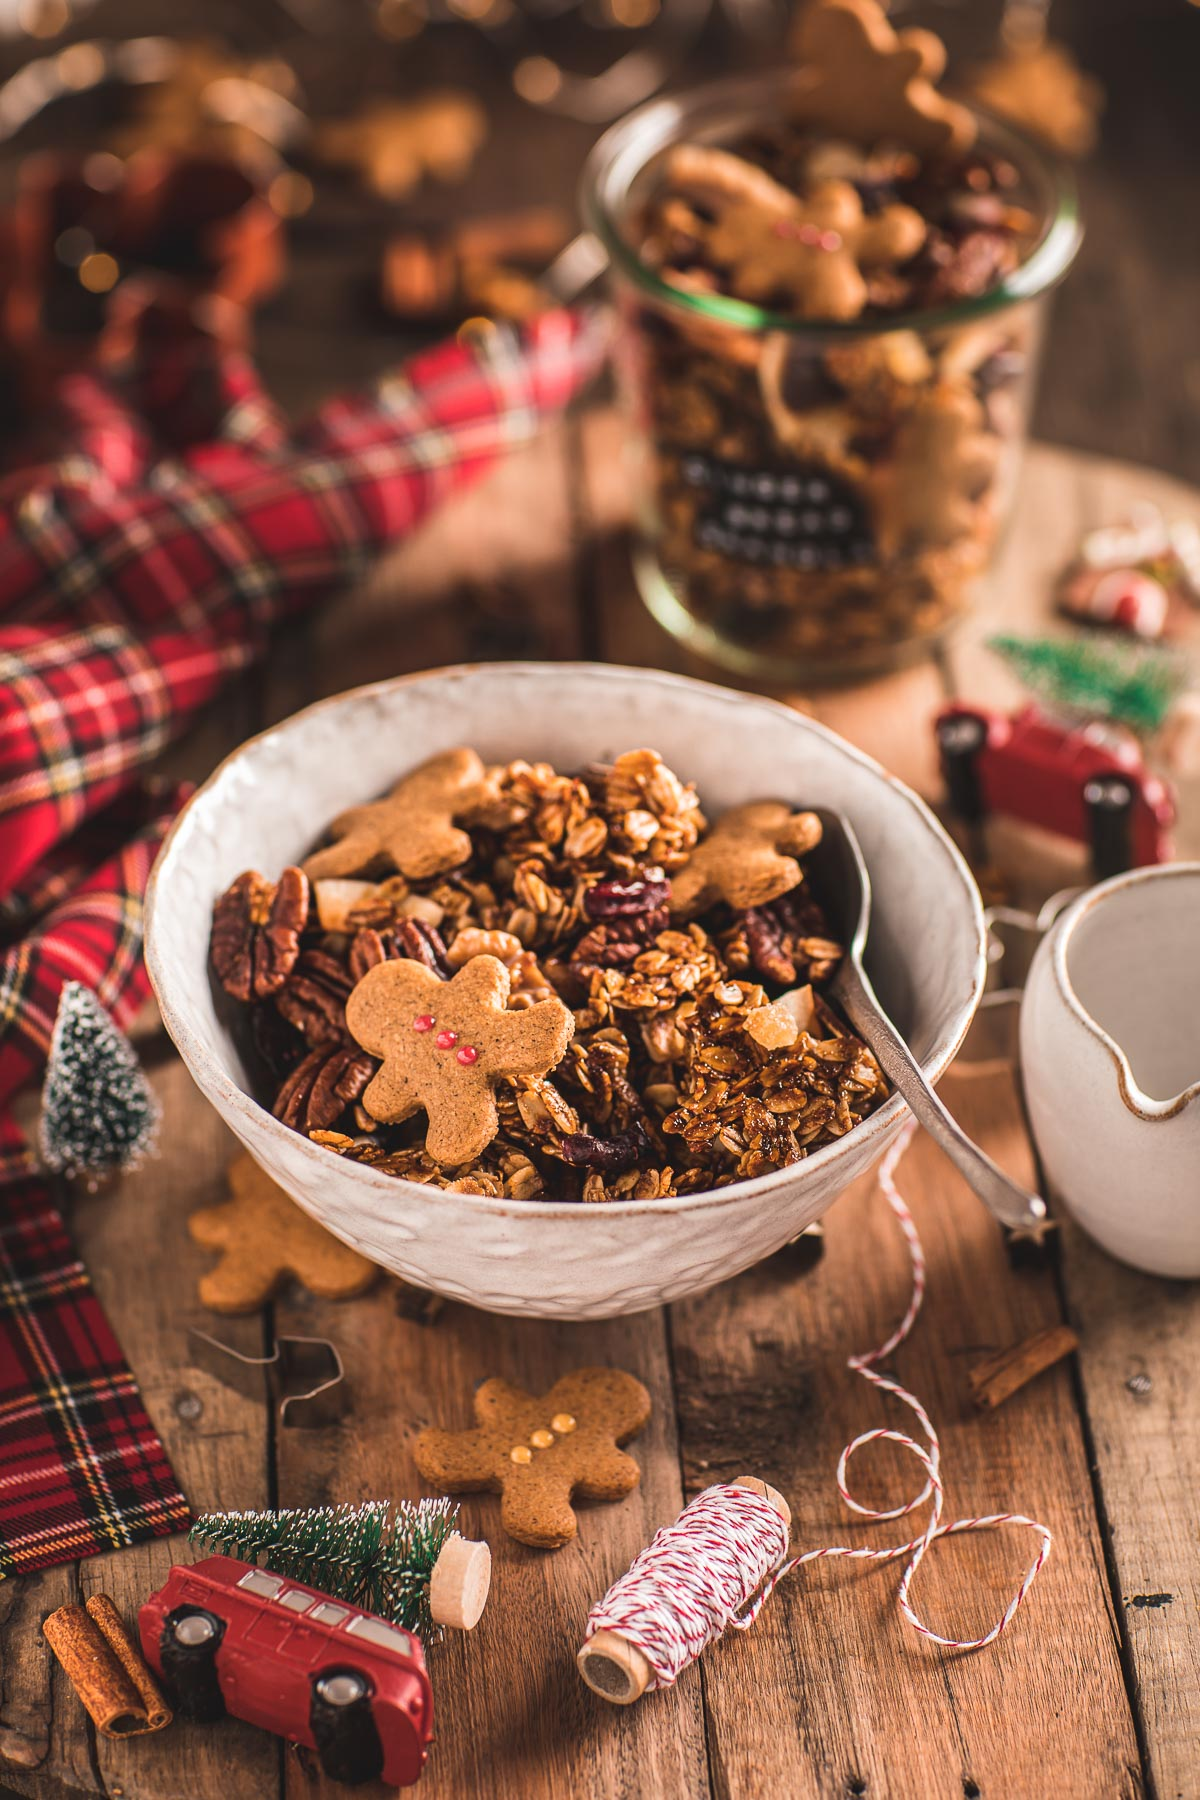 ricetta granola pan di zenzero colazione sana idea regalo di Natale Christmas Gingerbread Granola bowl for breakfast Crispy sweet and spiced recipe #vegan #glutenfree